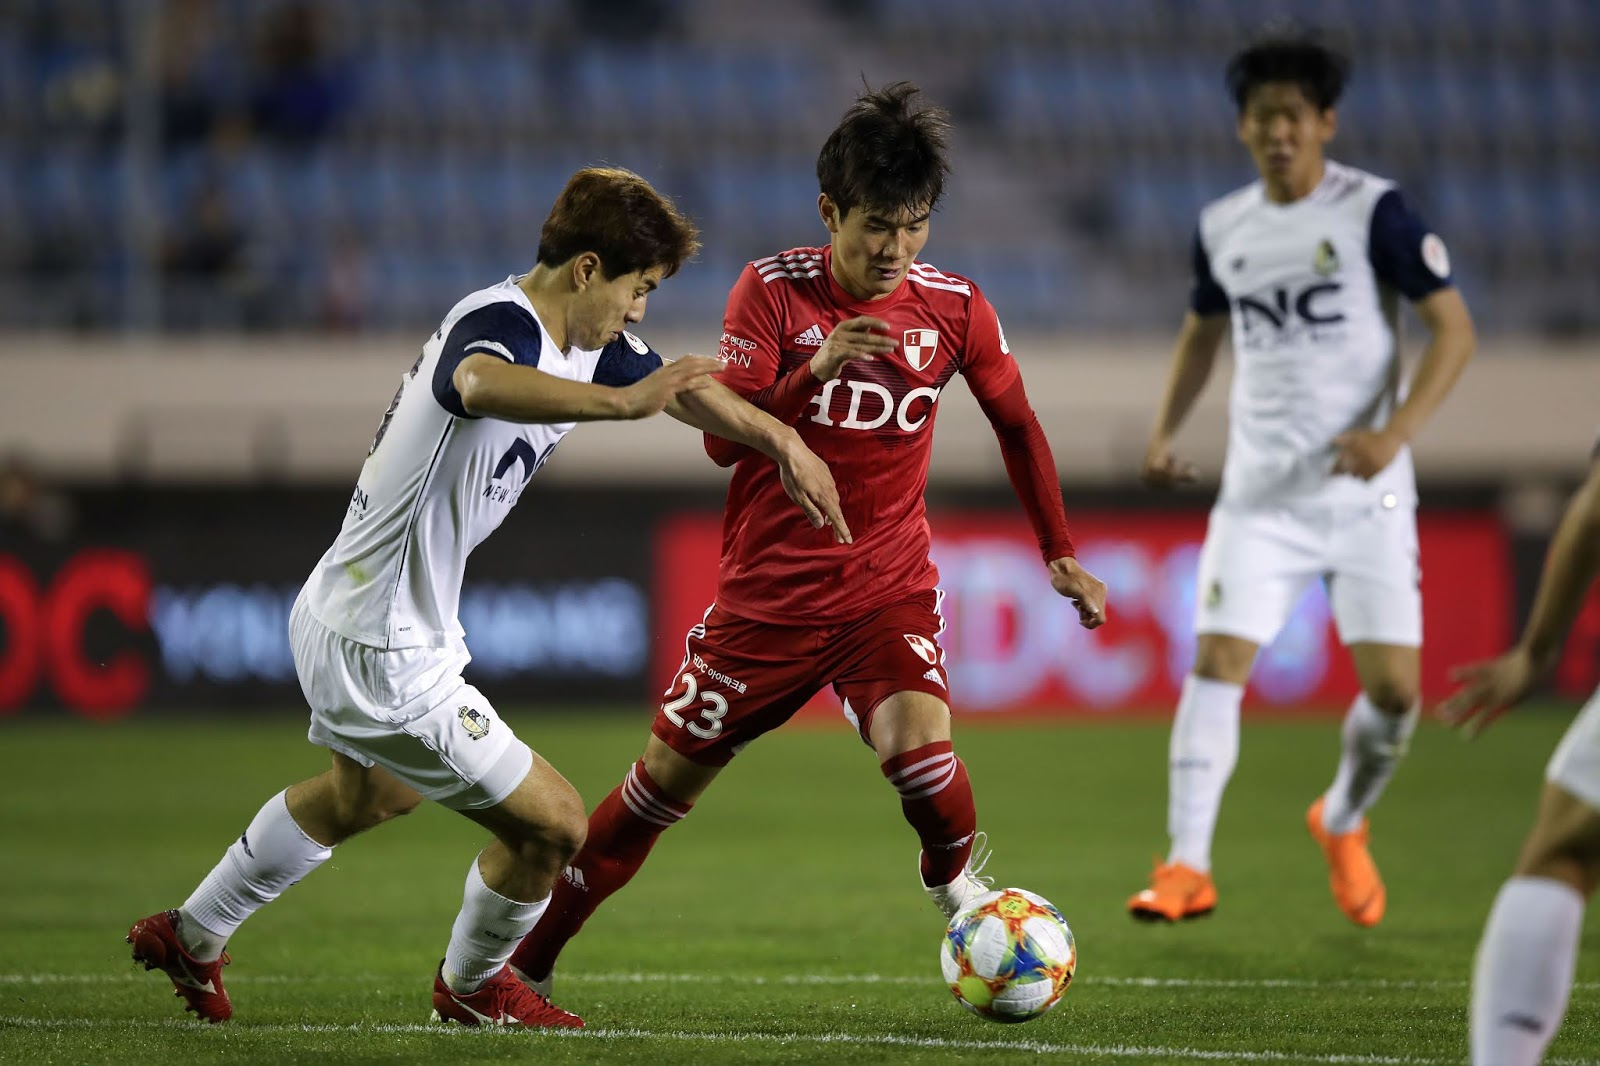 K League 2 Preview: Seoul E-Land vs Busan IPark